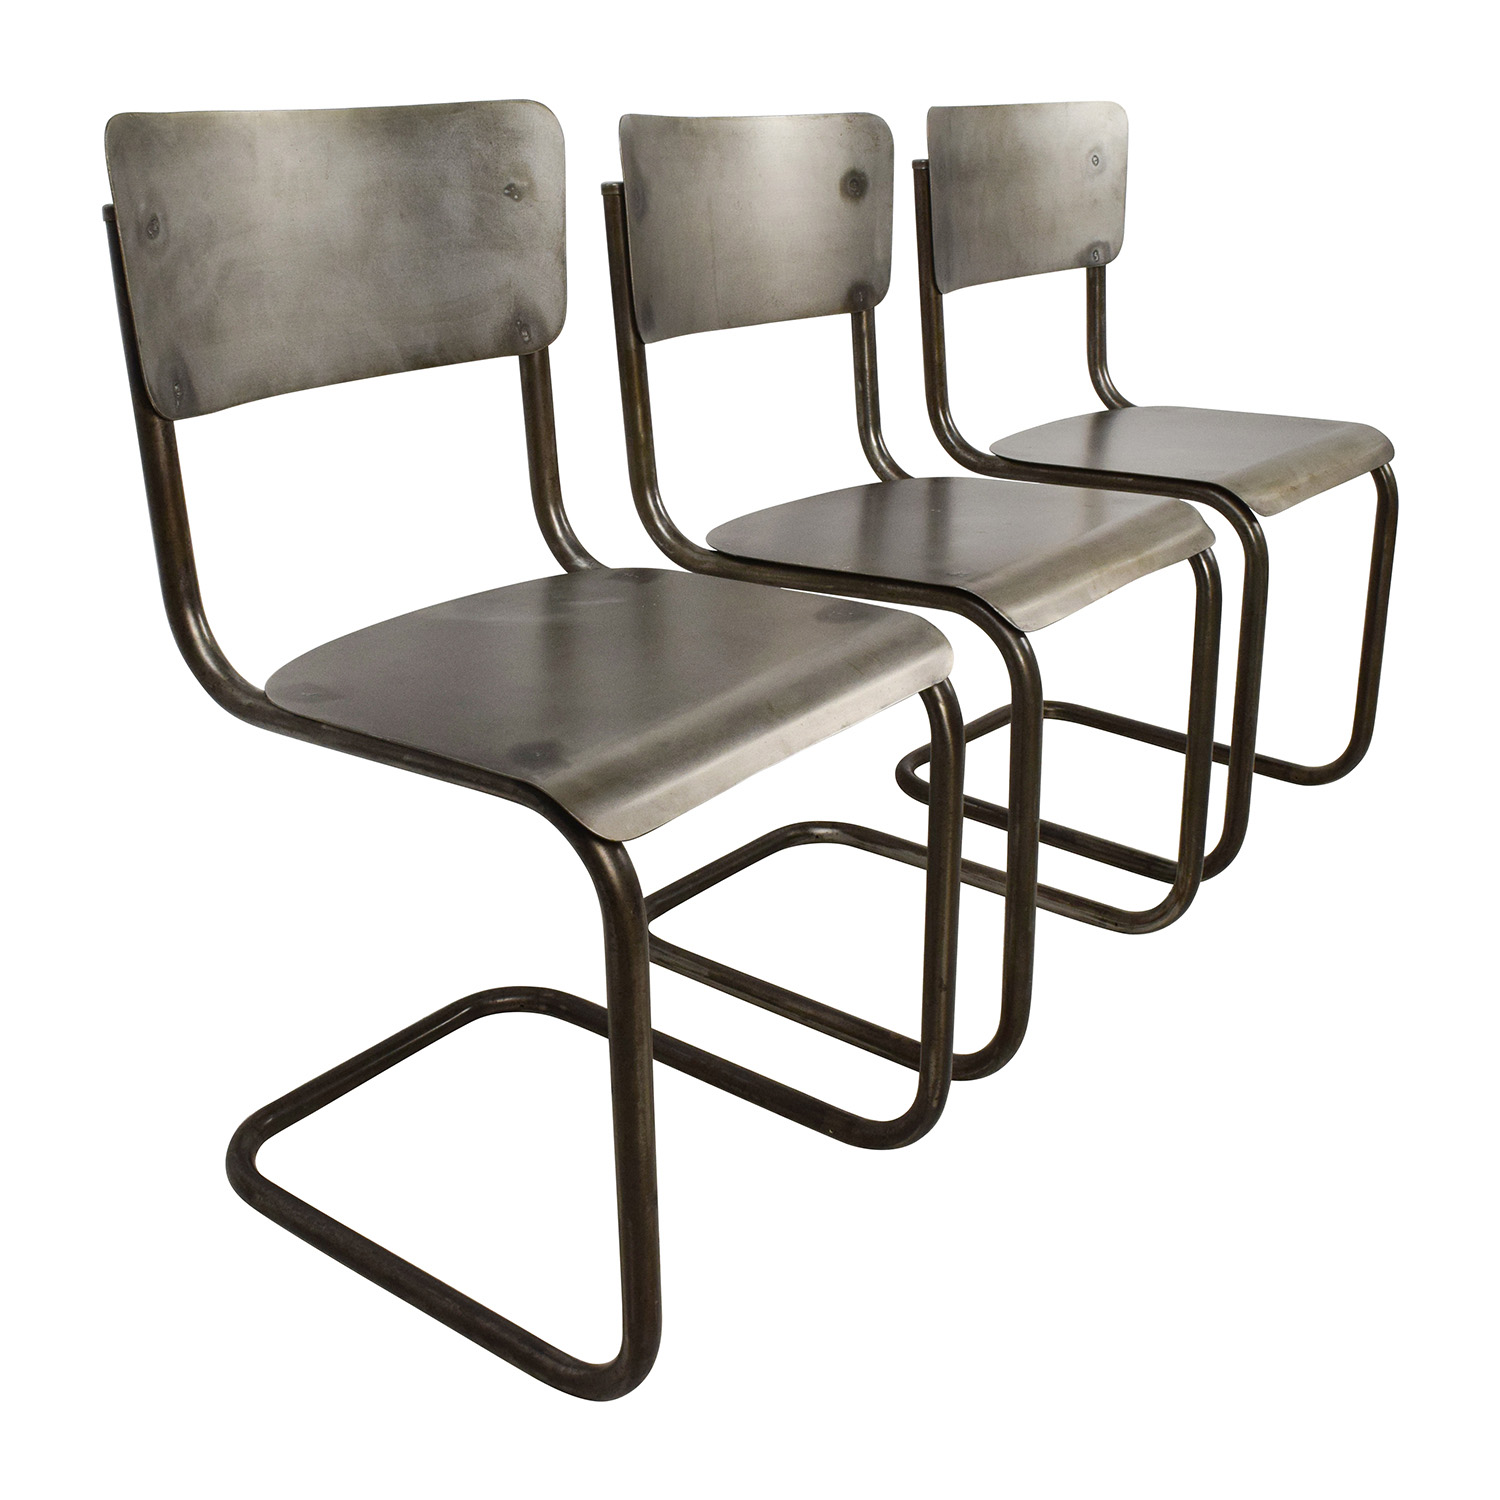 68 off industrial style metal chair set chairs for Chair chair chair